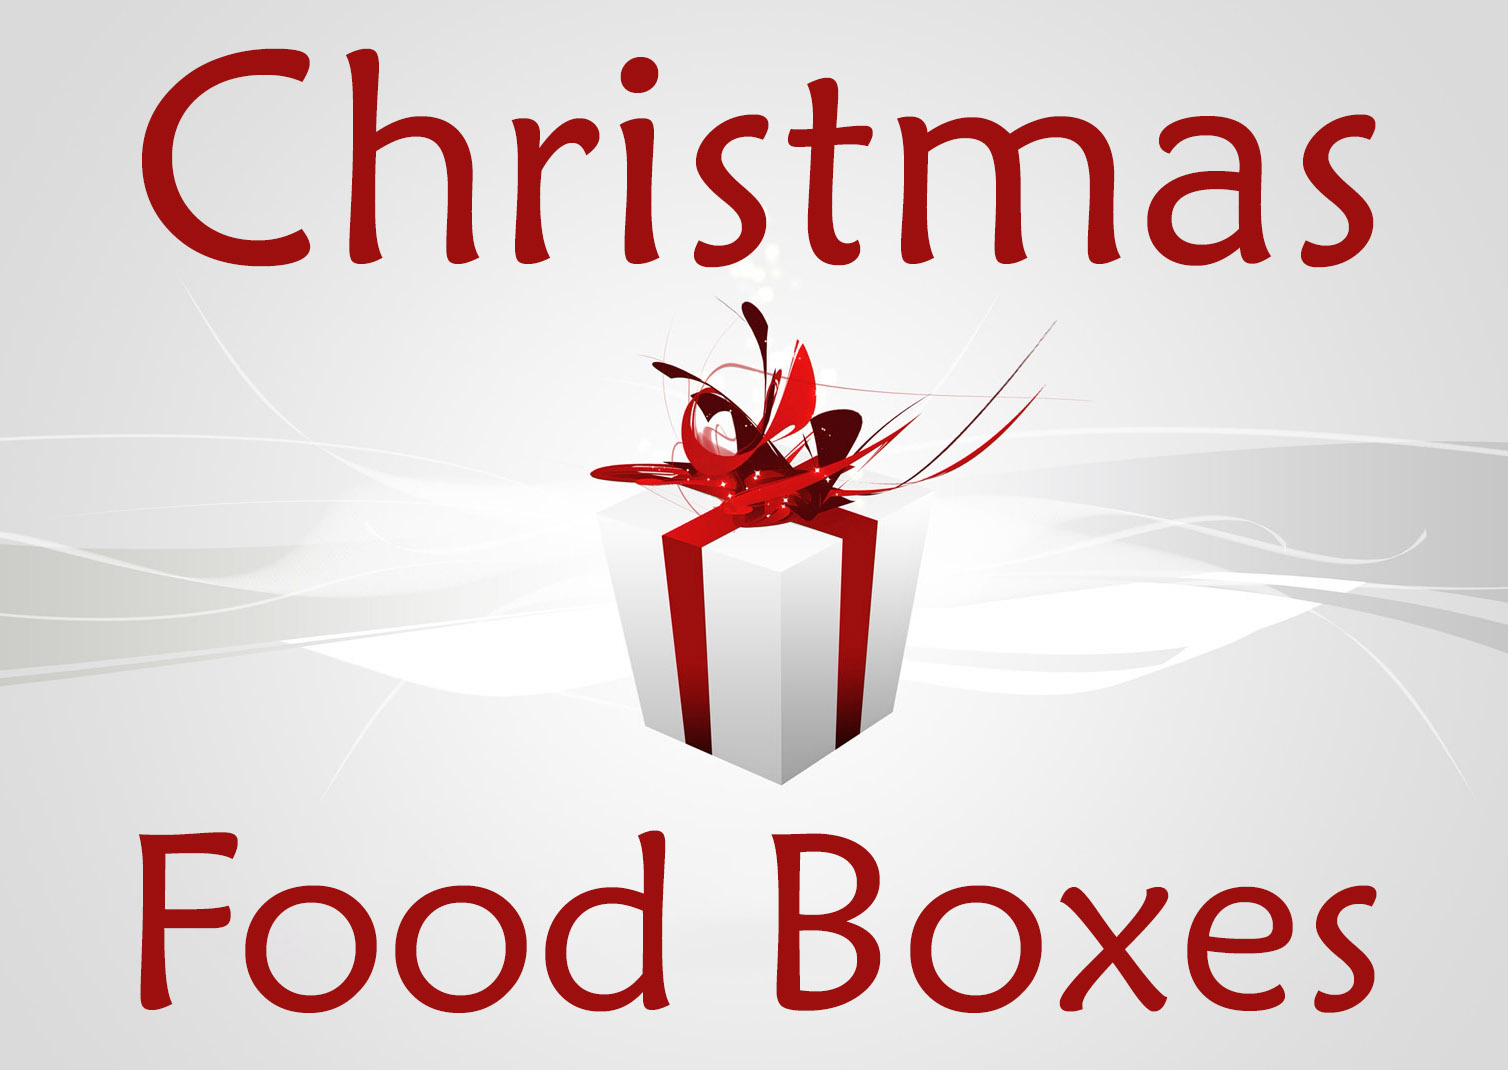 Image result for Christmas boxes of food images